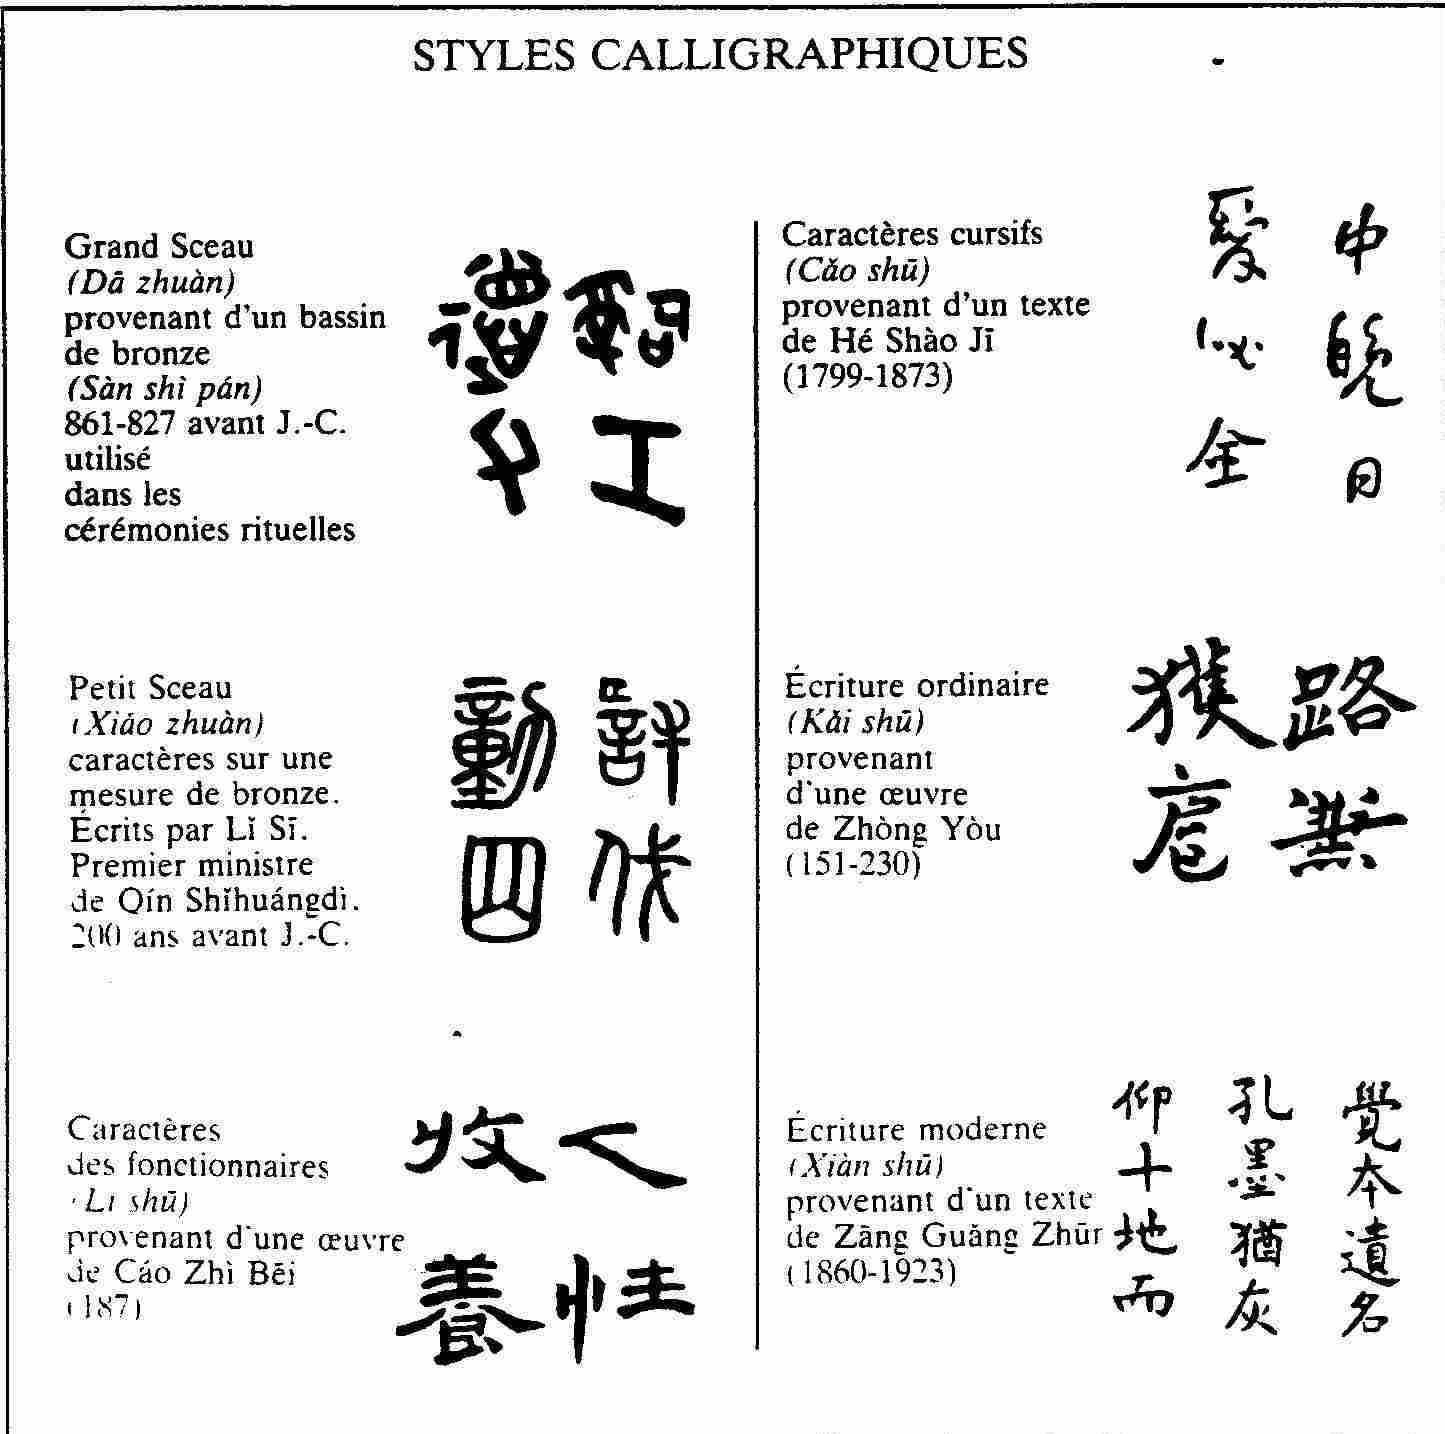 4 styles calligraphiques